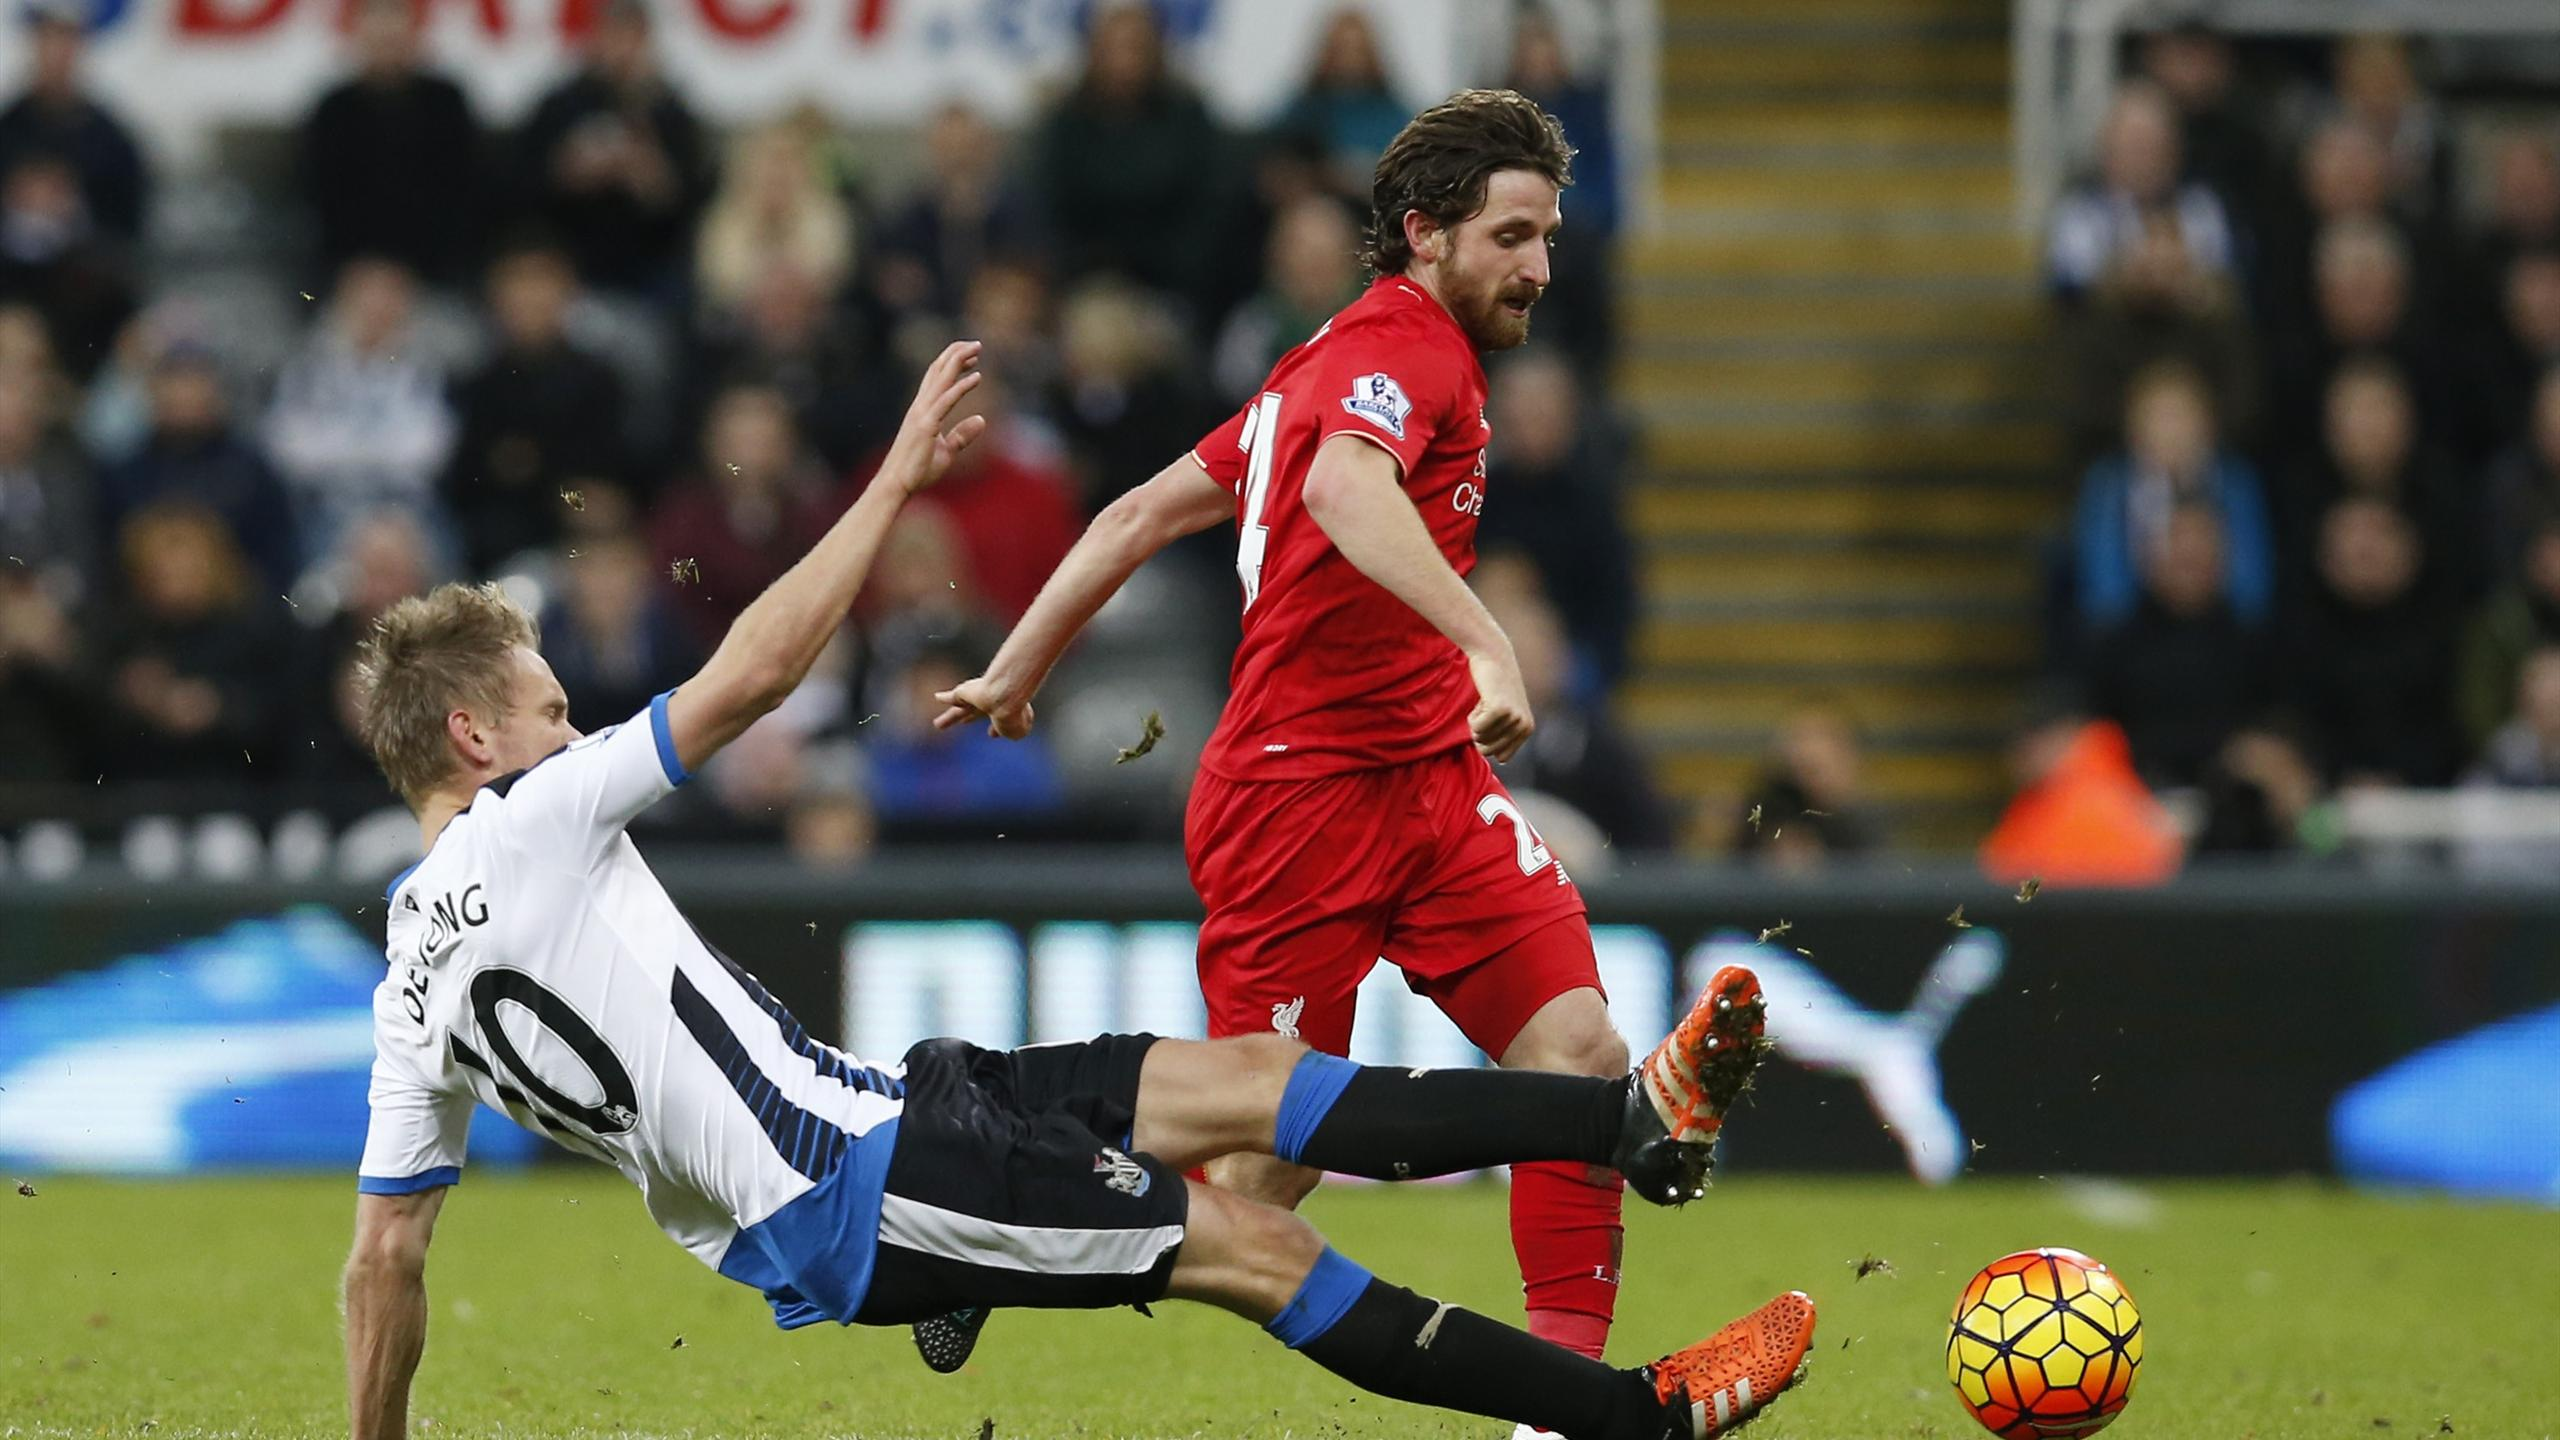 Liverpool's Joe Allen in action with Newcastle United's Siem de Jong